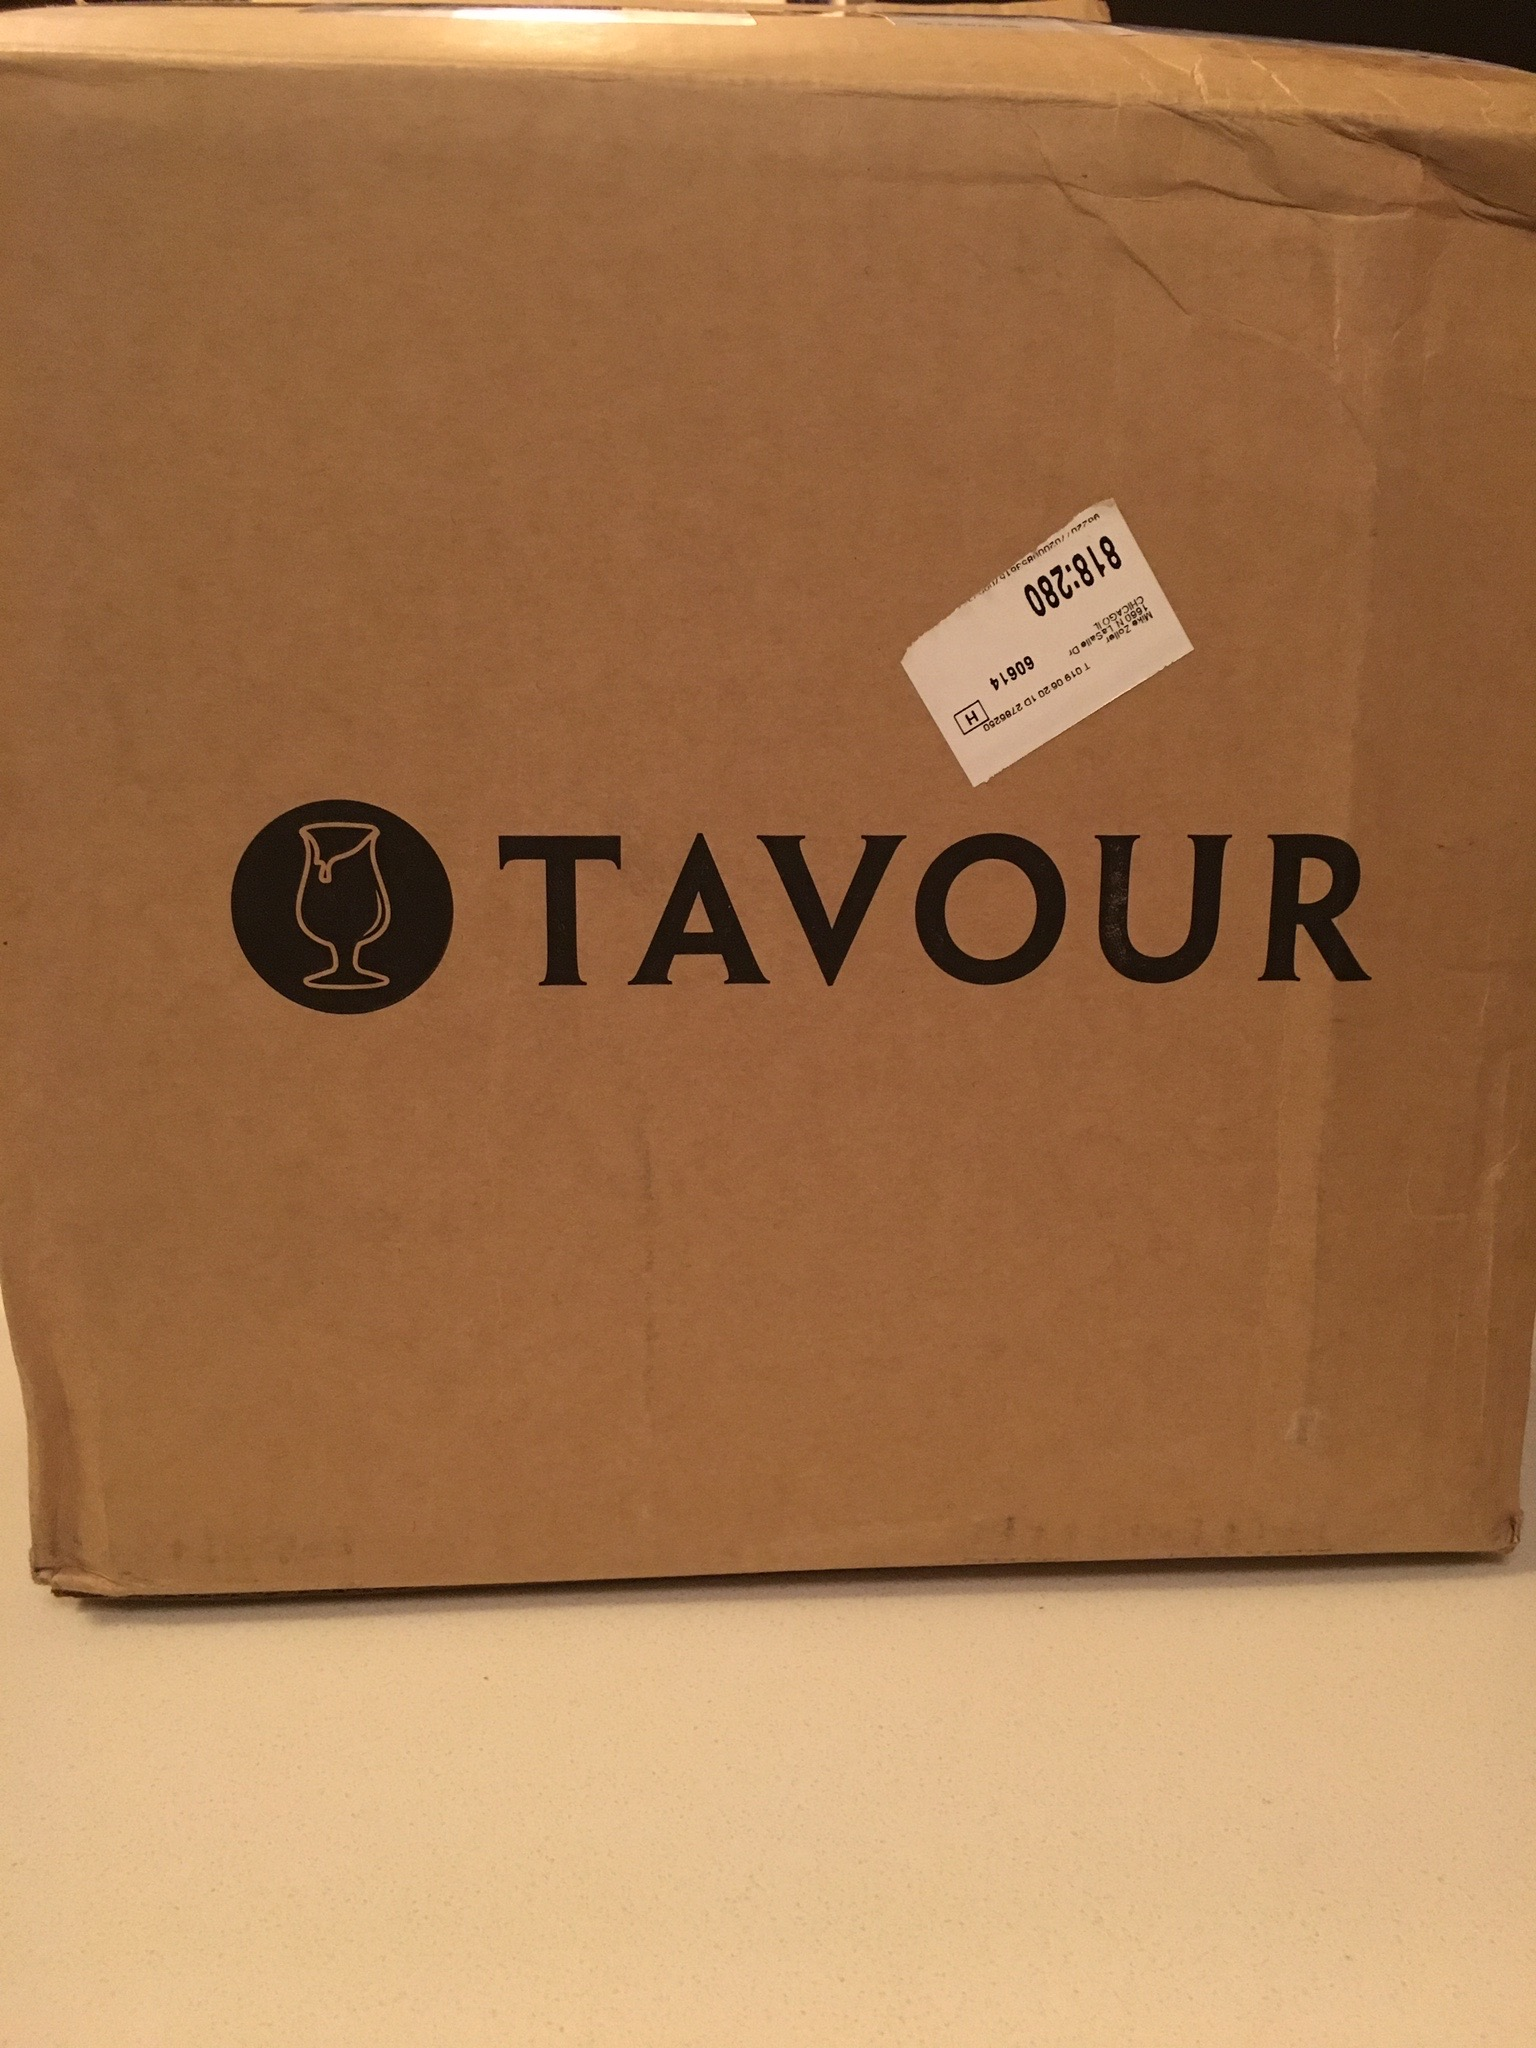 Tavour craft beer shipping